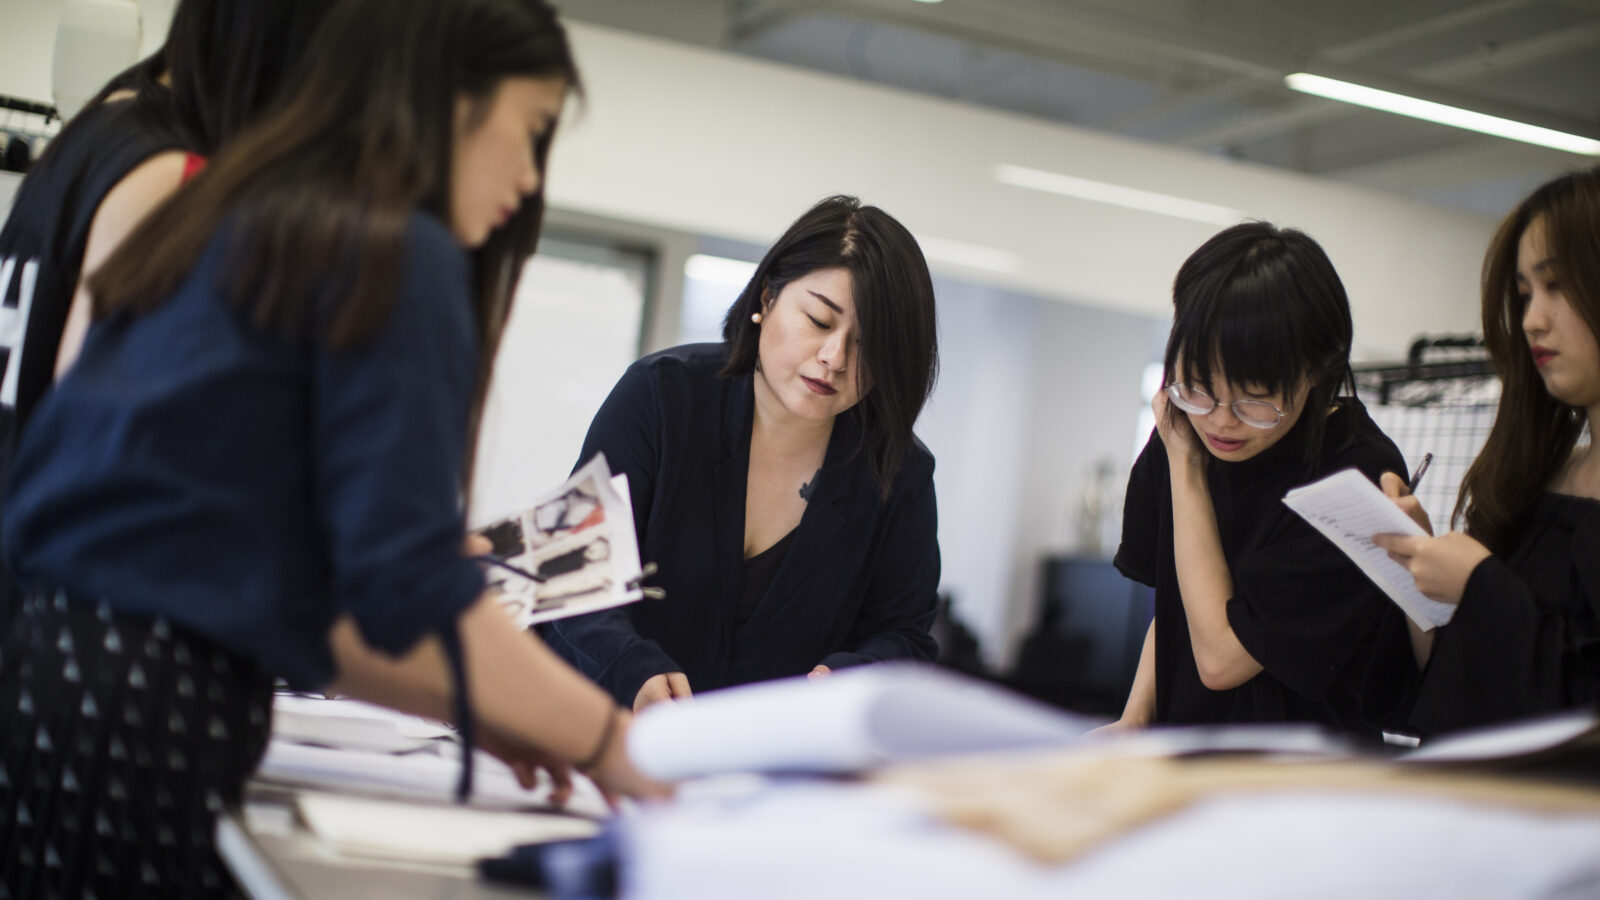 Masha Ma meets with her design team at her studio in Shanghai, China.